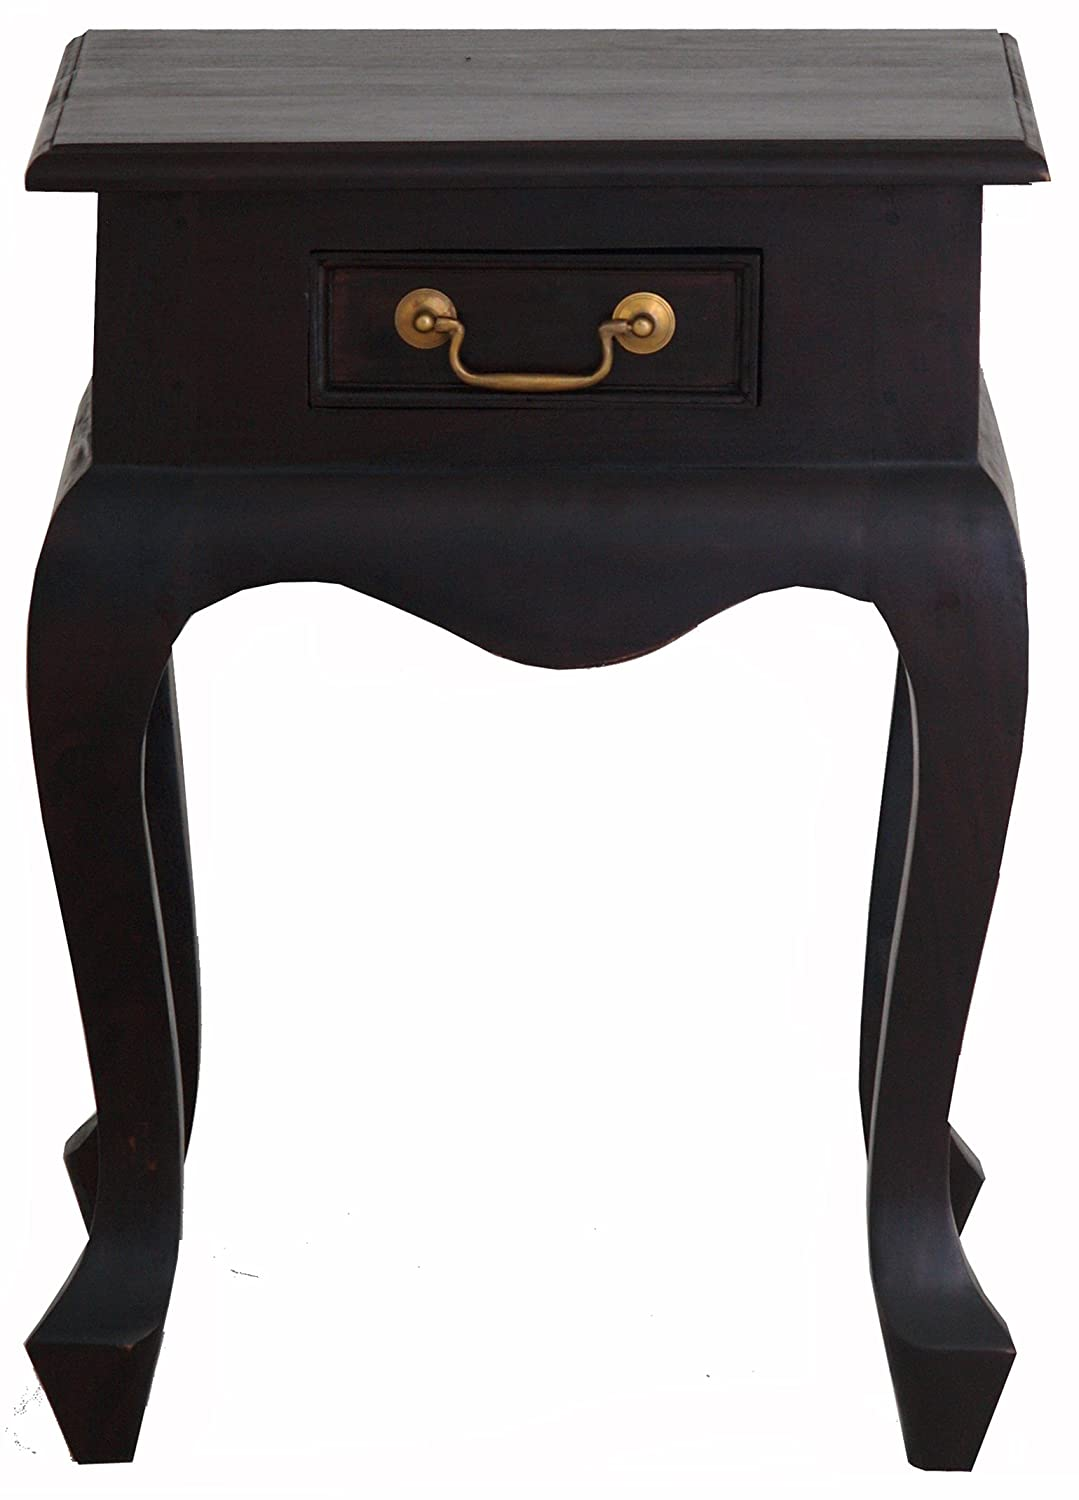 Amazon.com: NES Furniture abc10285 Queen Anne Nightstand ...